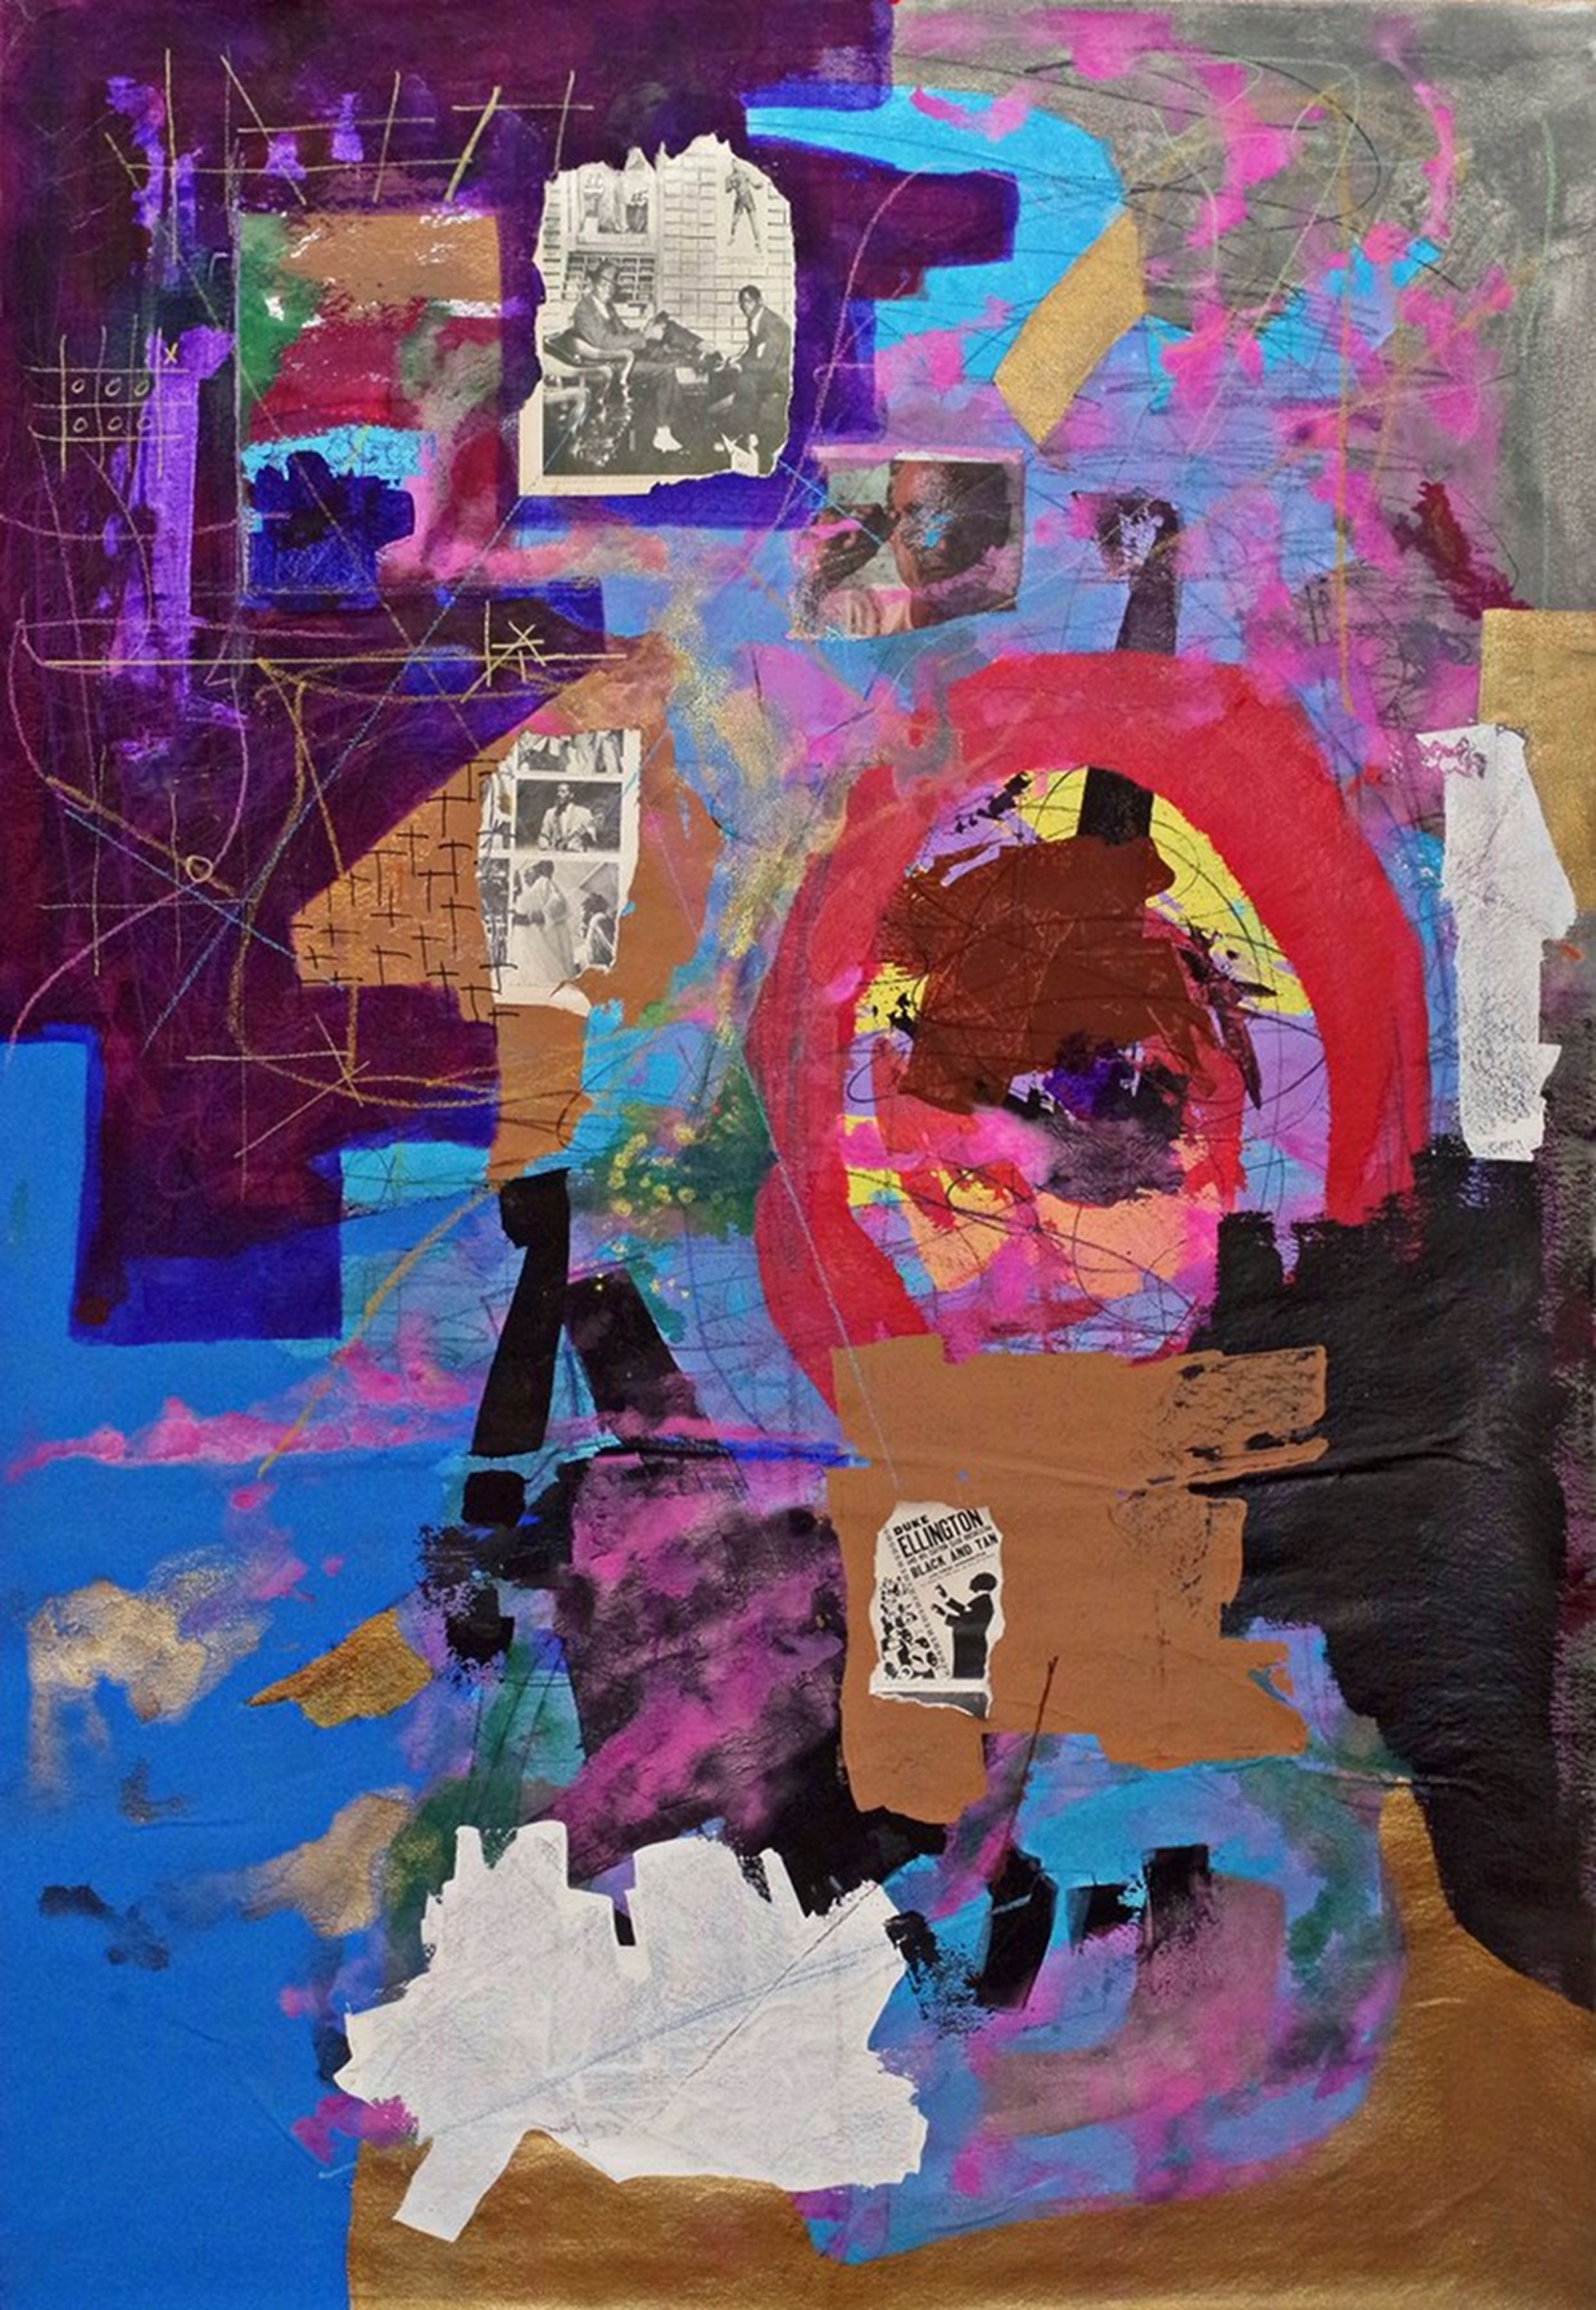 Kwesi Abbensetts, Martyrs For The Spirit, 2018,  Acrylic on canvas, 78 x 48 inches, Abstract painting with layers of brown, blue, purple paint and thin line marks on top, Kwesi Abbensetts is a New York based painter.